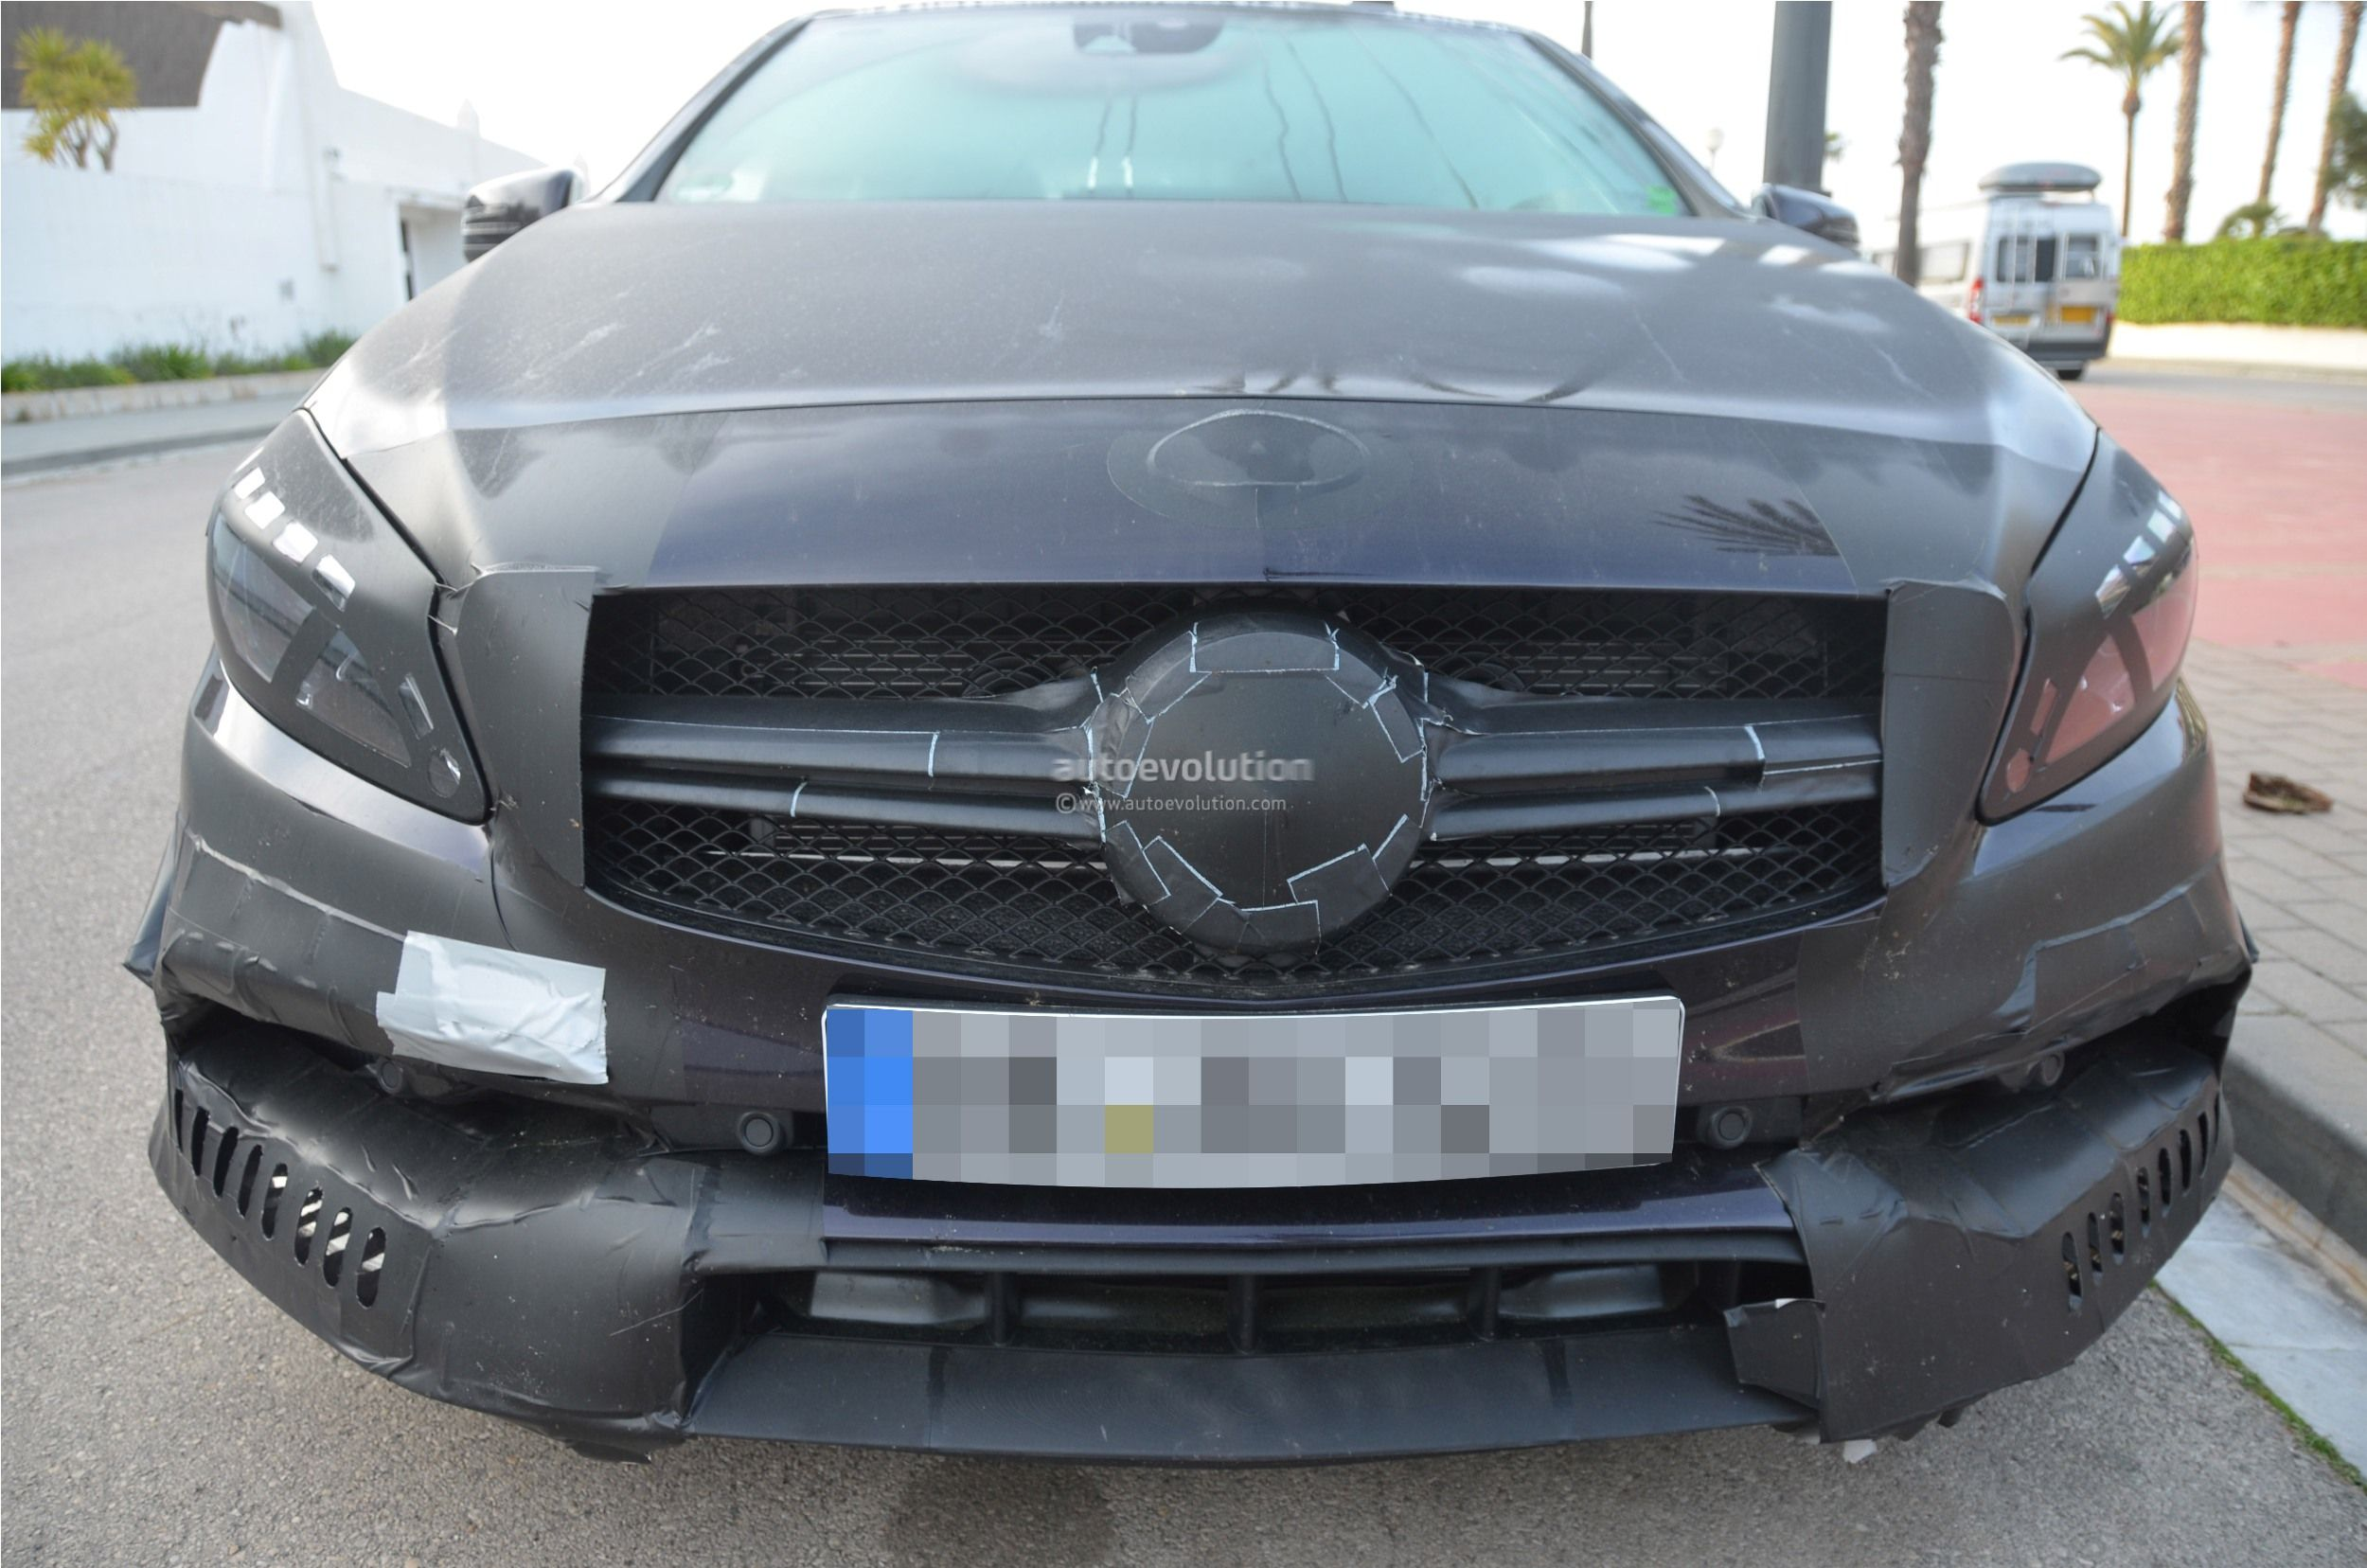 2016 - [Mercedes] Classe A restylée - Page 5 2016-mercedes-benz-a-45-amg-facelift-spied-photo-gallery_4